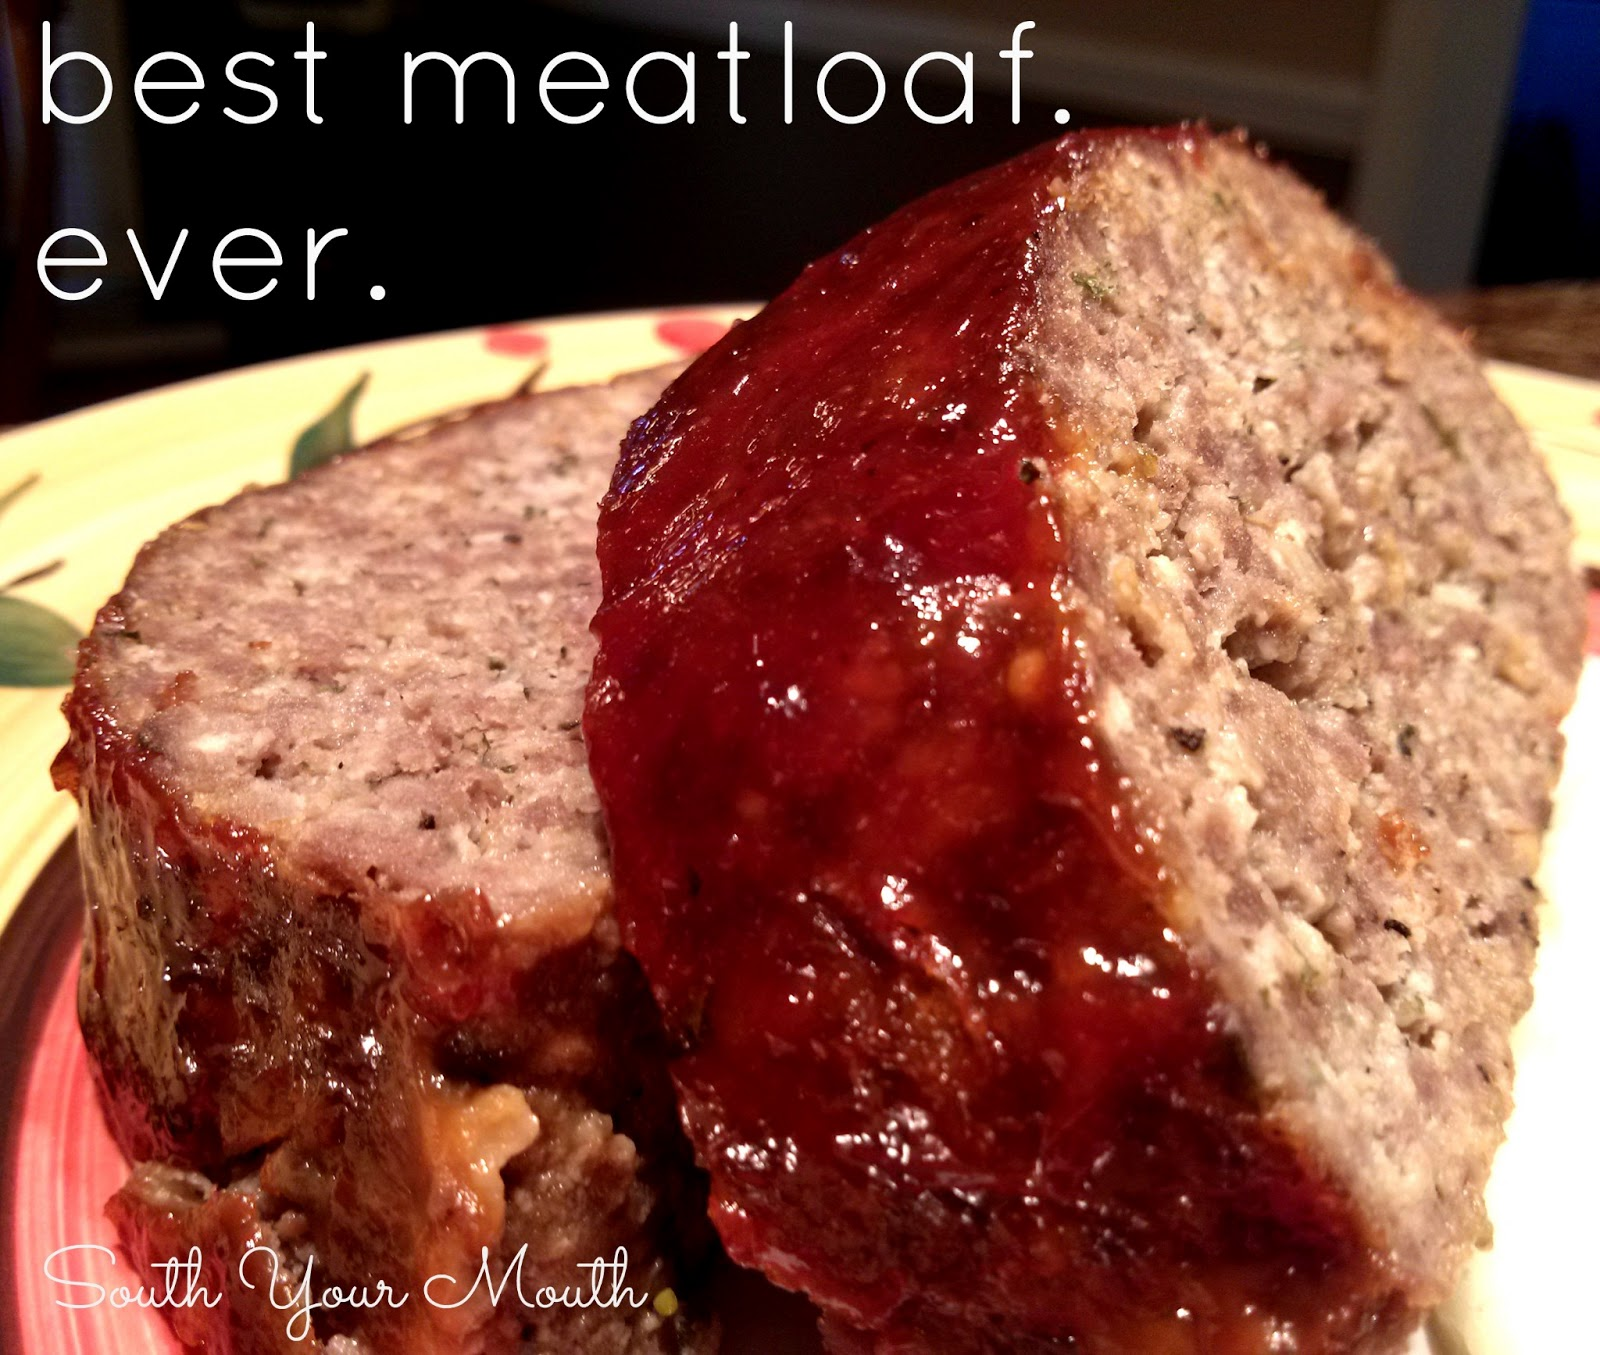 Best Meatloaf. Ever.